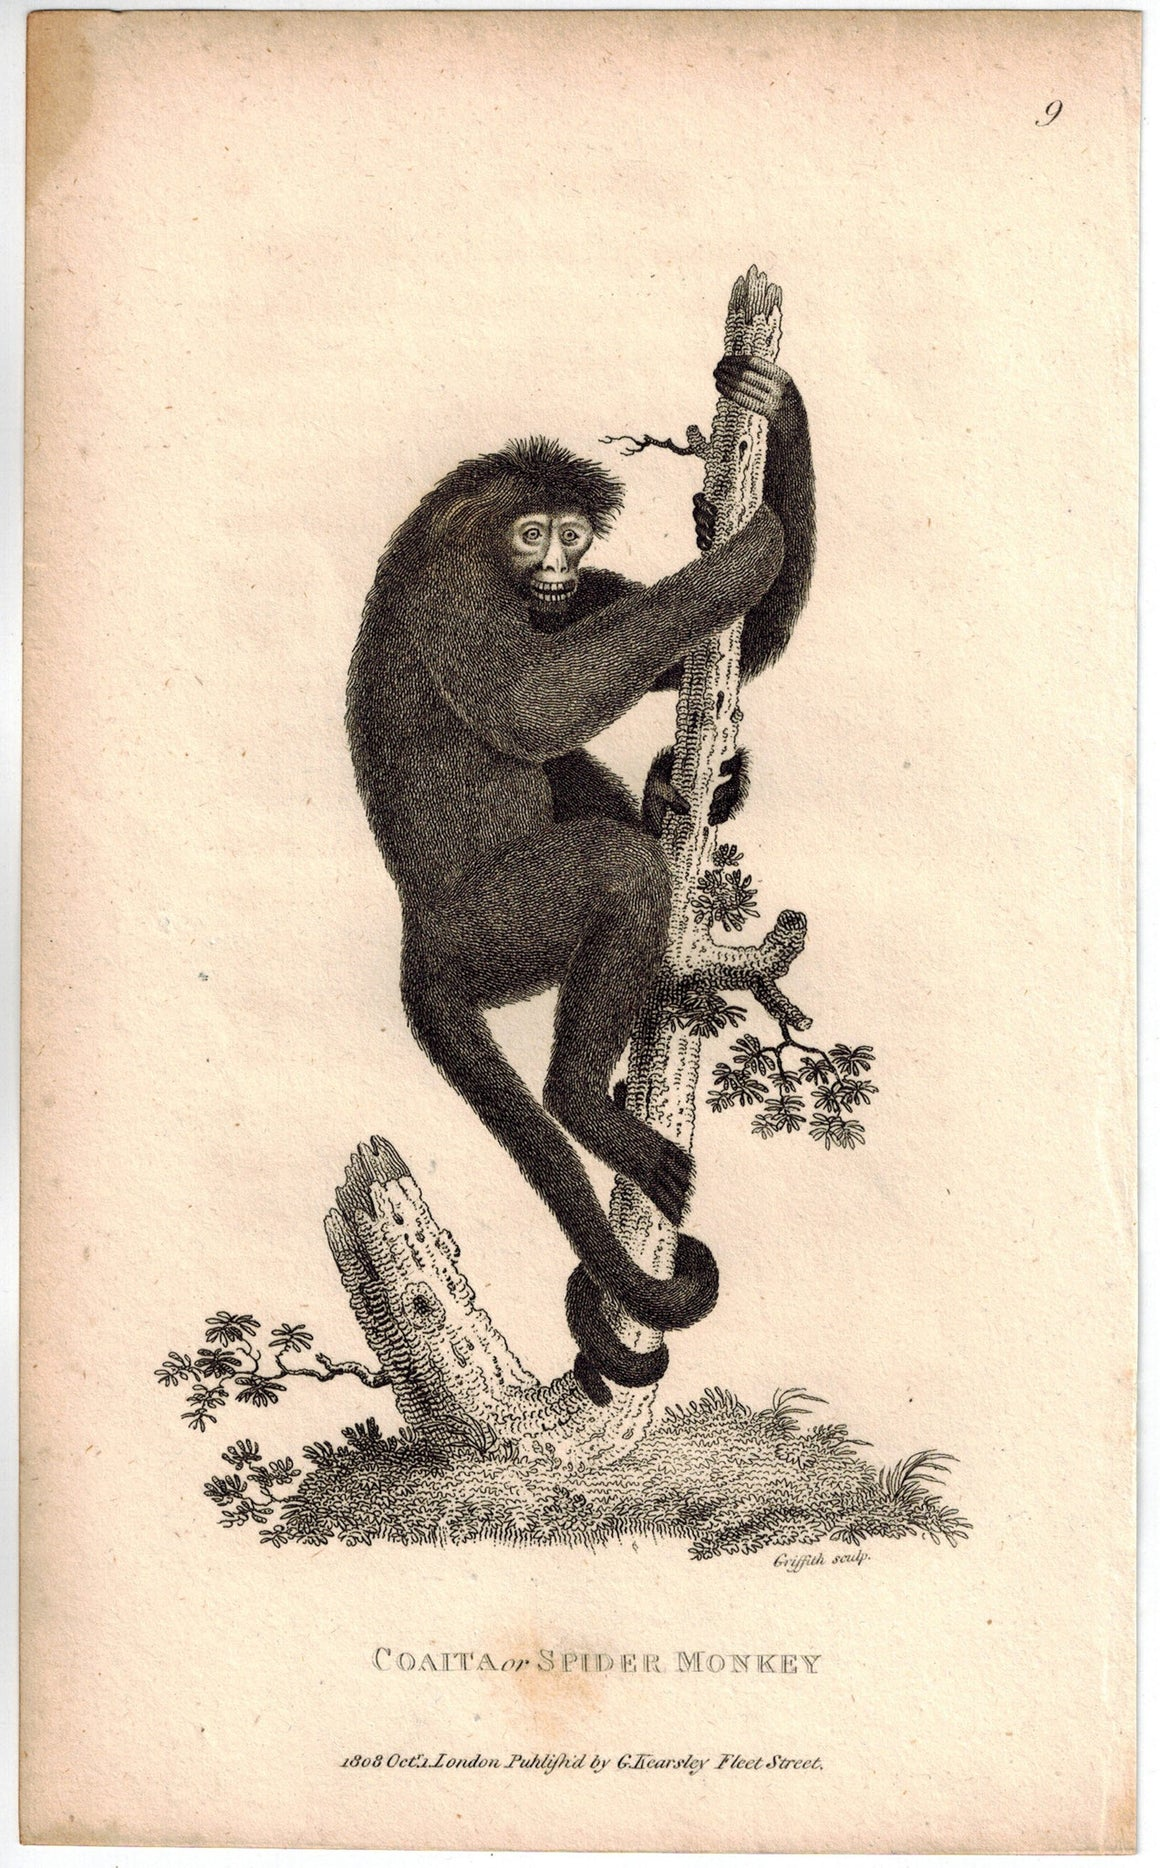 Coaita or Spider Monkey Print 1809 George Shaw Original Engraving